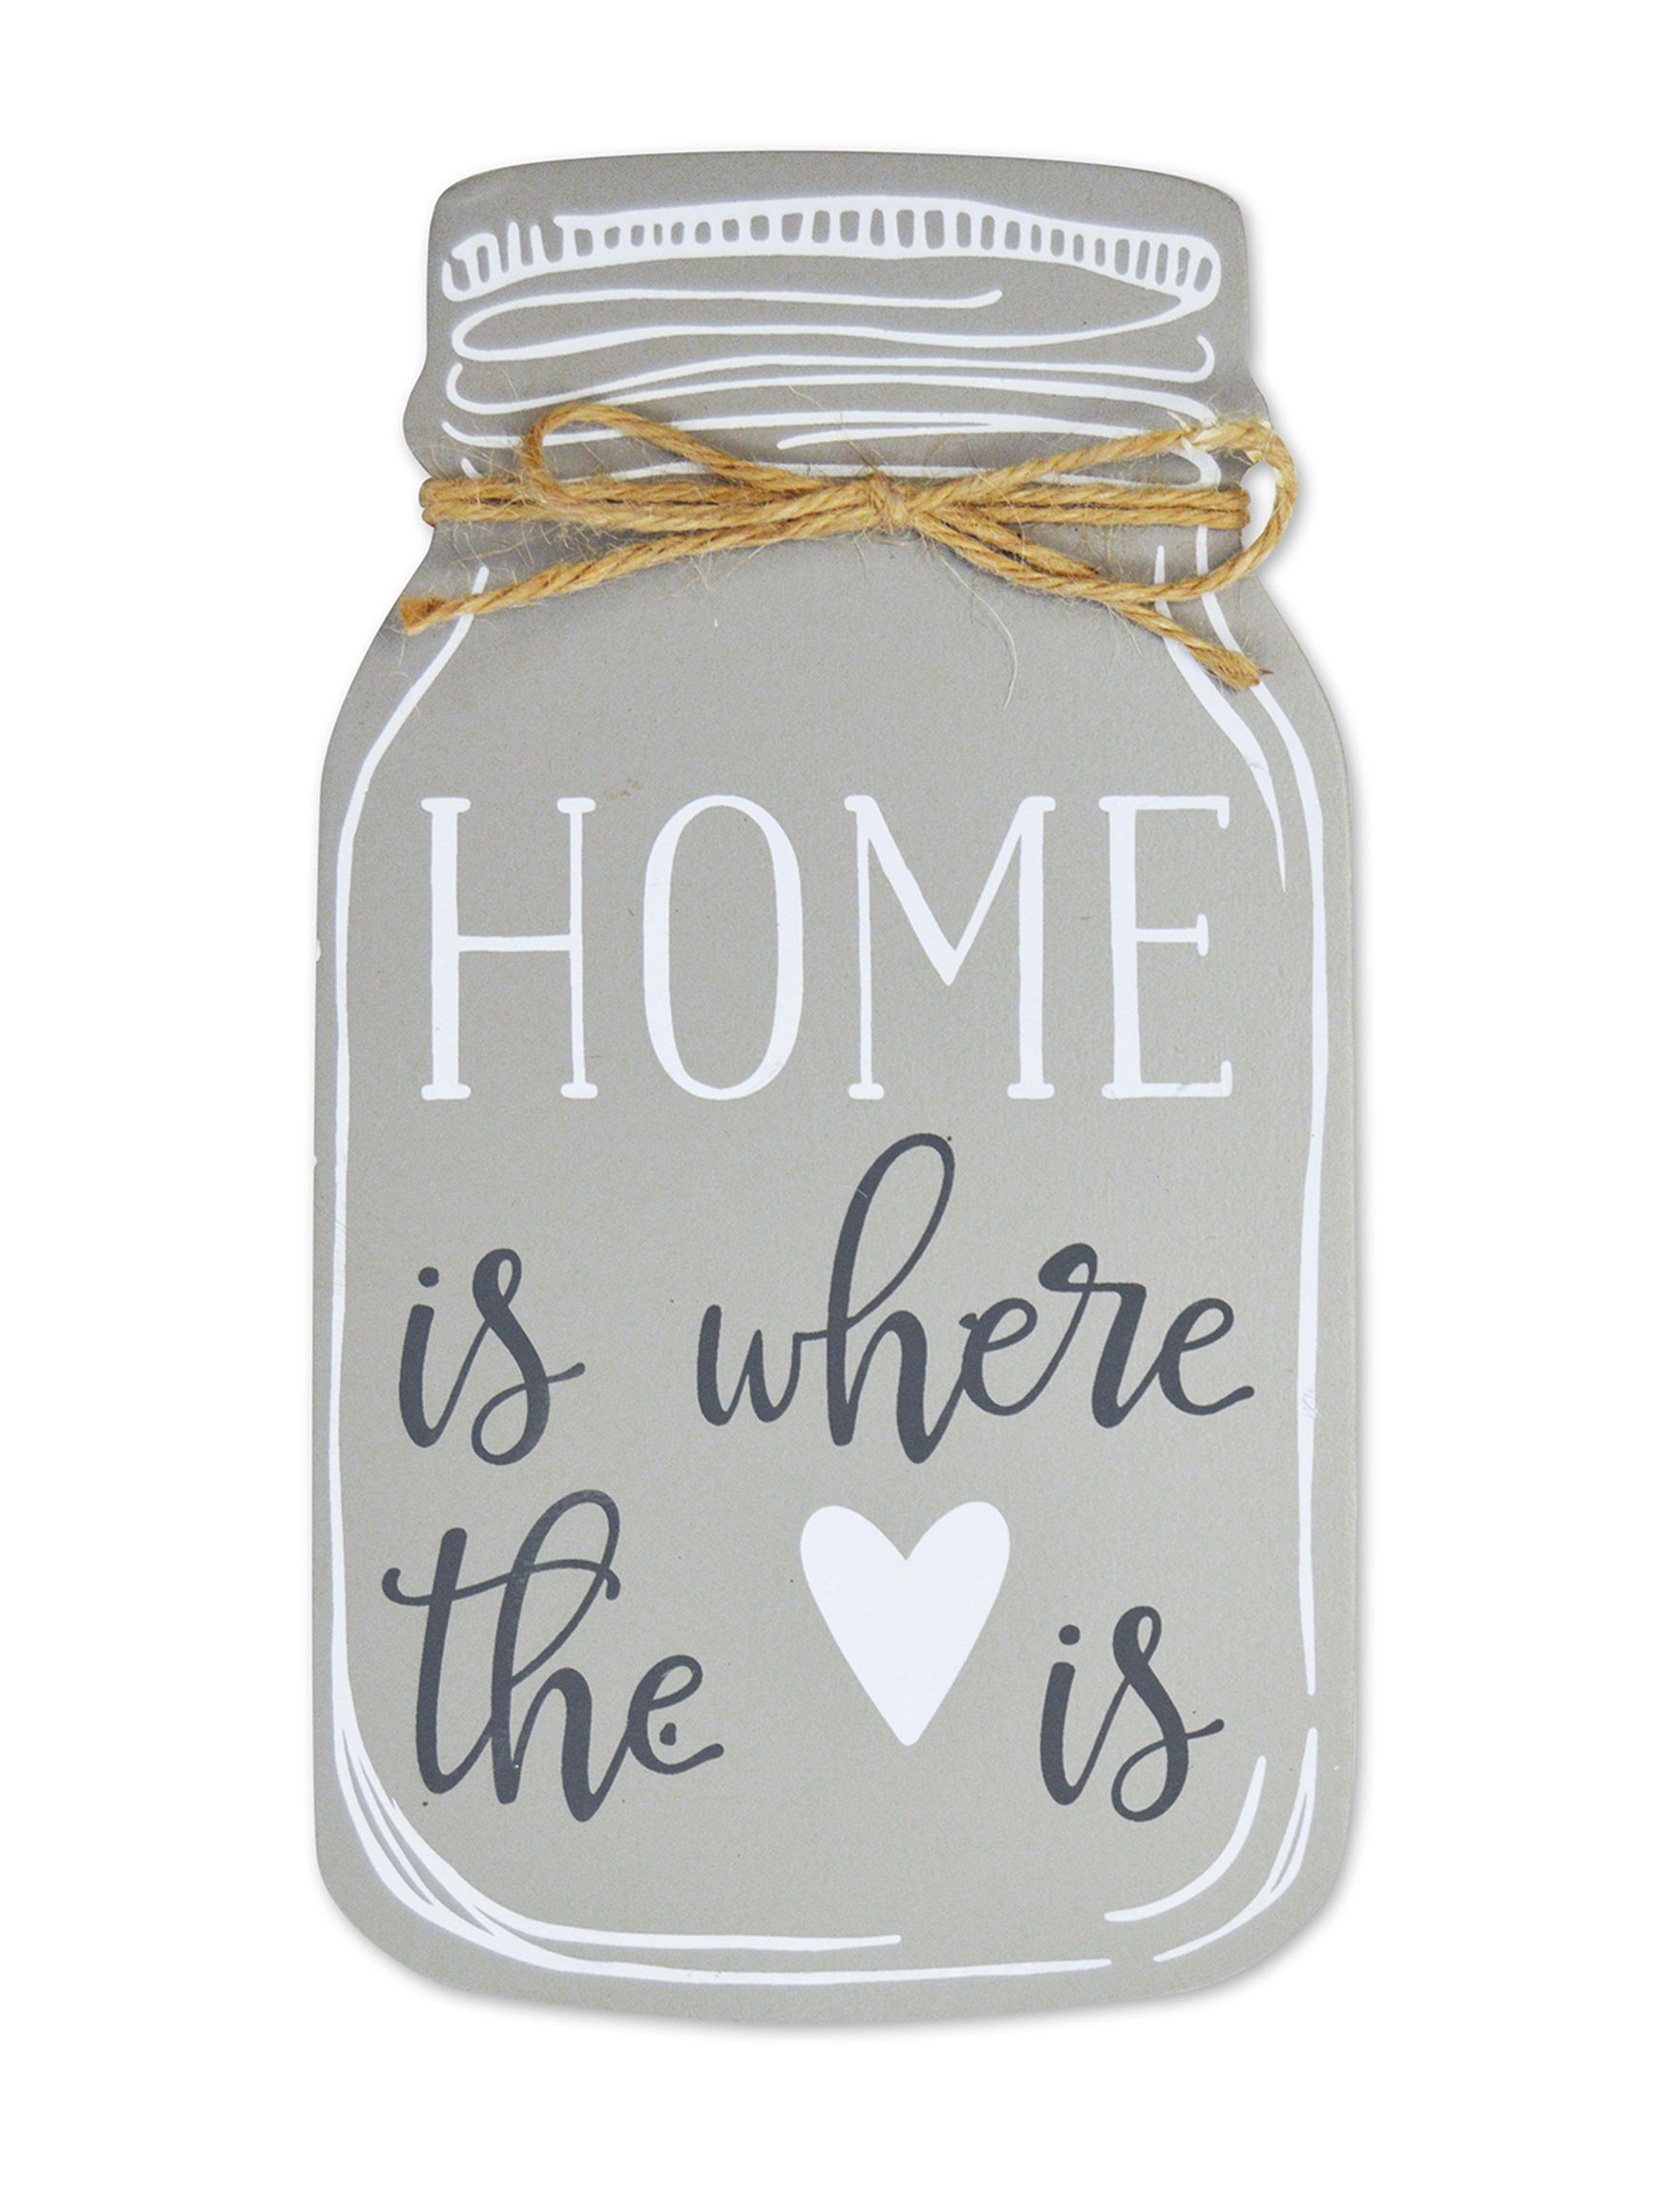 New View Grey Decorative Objects Home Accents